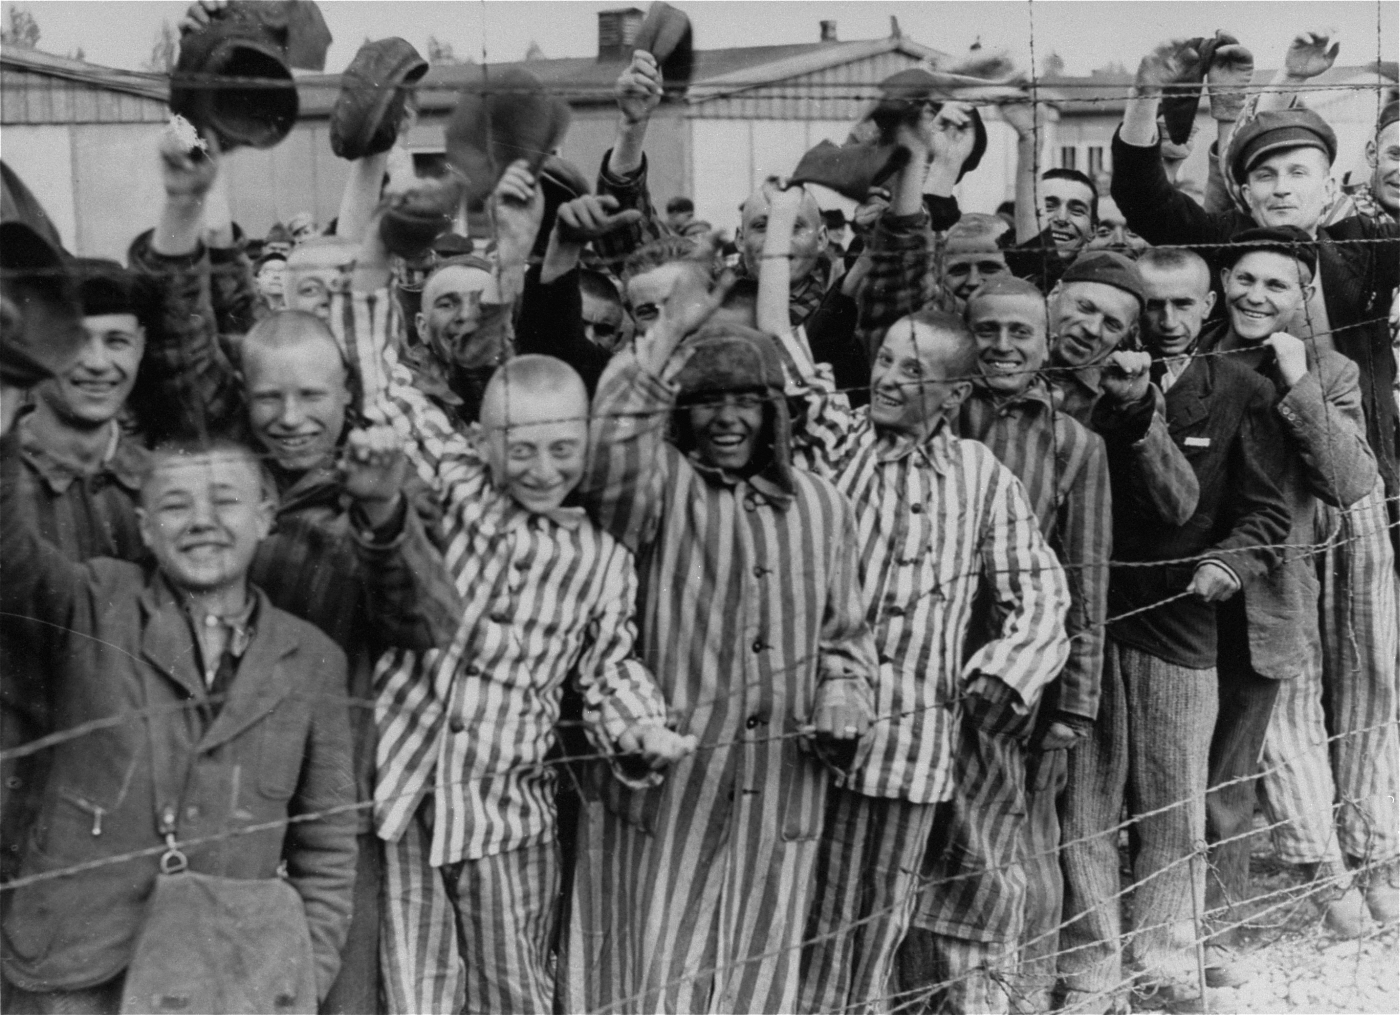 Prisoners celebrating the arrival of United States Army troops, Dachau Concentration Camp, Germany, 29 Apr 1945 (US Holocaust Memorial Museum: 45075)